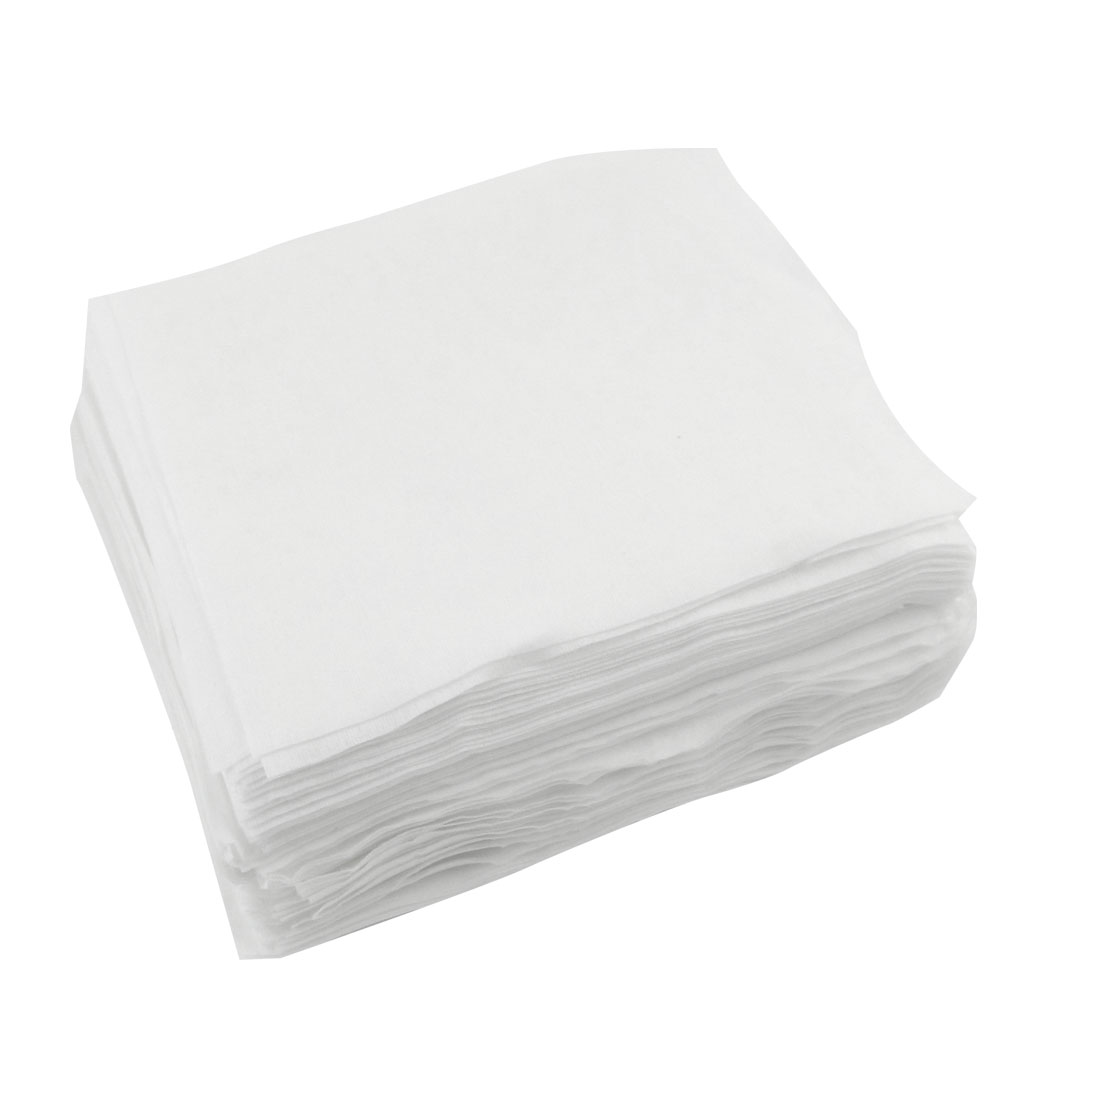 "300 Pcs 6"" x 6"" White Dustless Cleanroom Wipers Wiping Cloth"